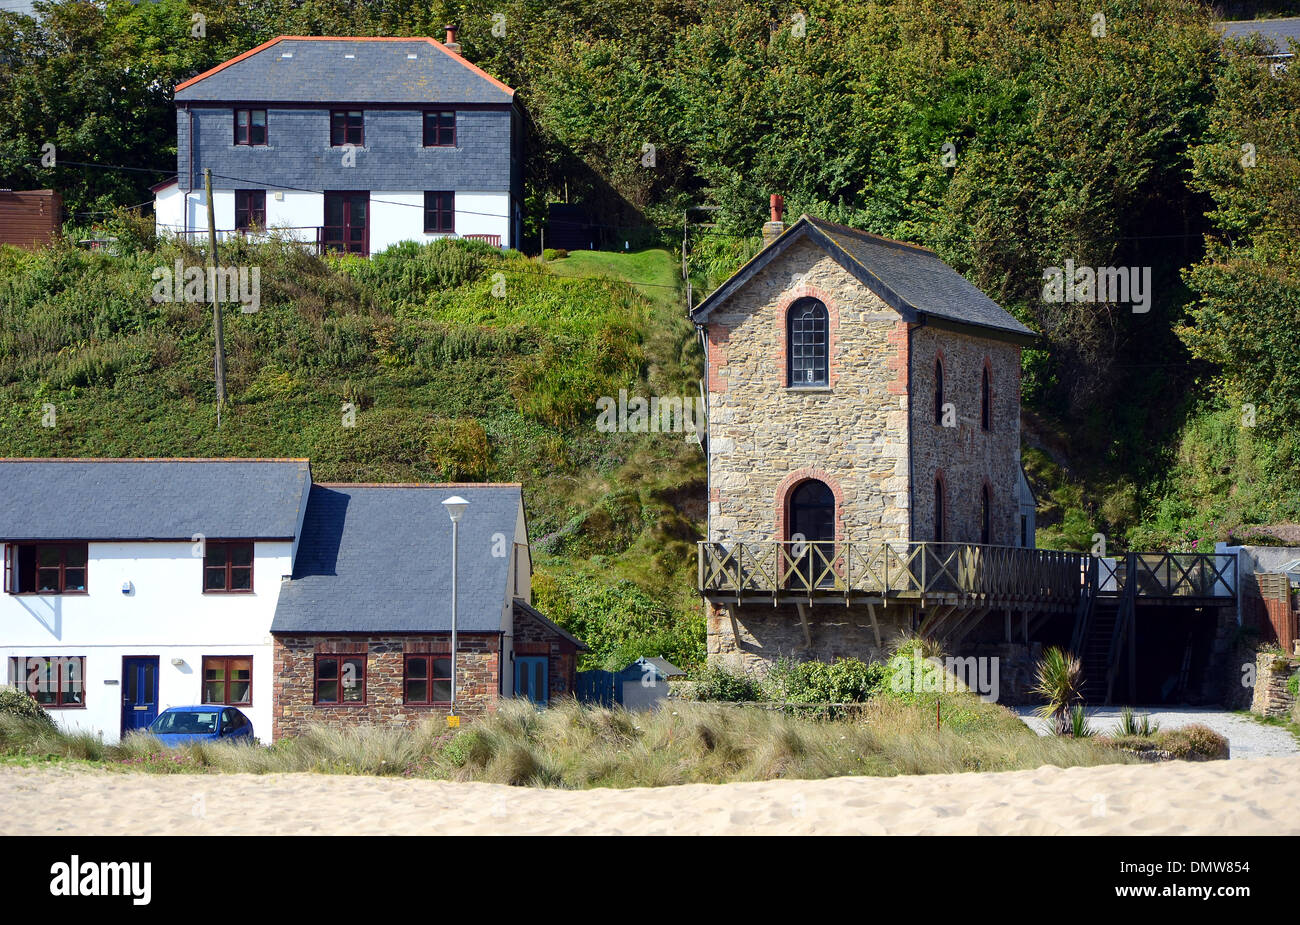 A restored engine house from a former tin mine sits beside new homes at Porthtowan in Cornwall, UK - Stock Image